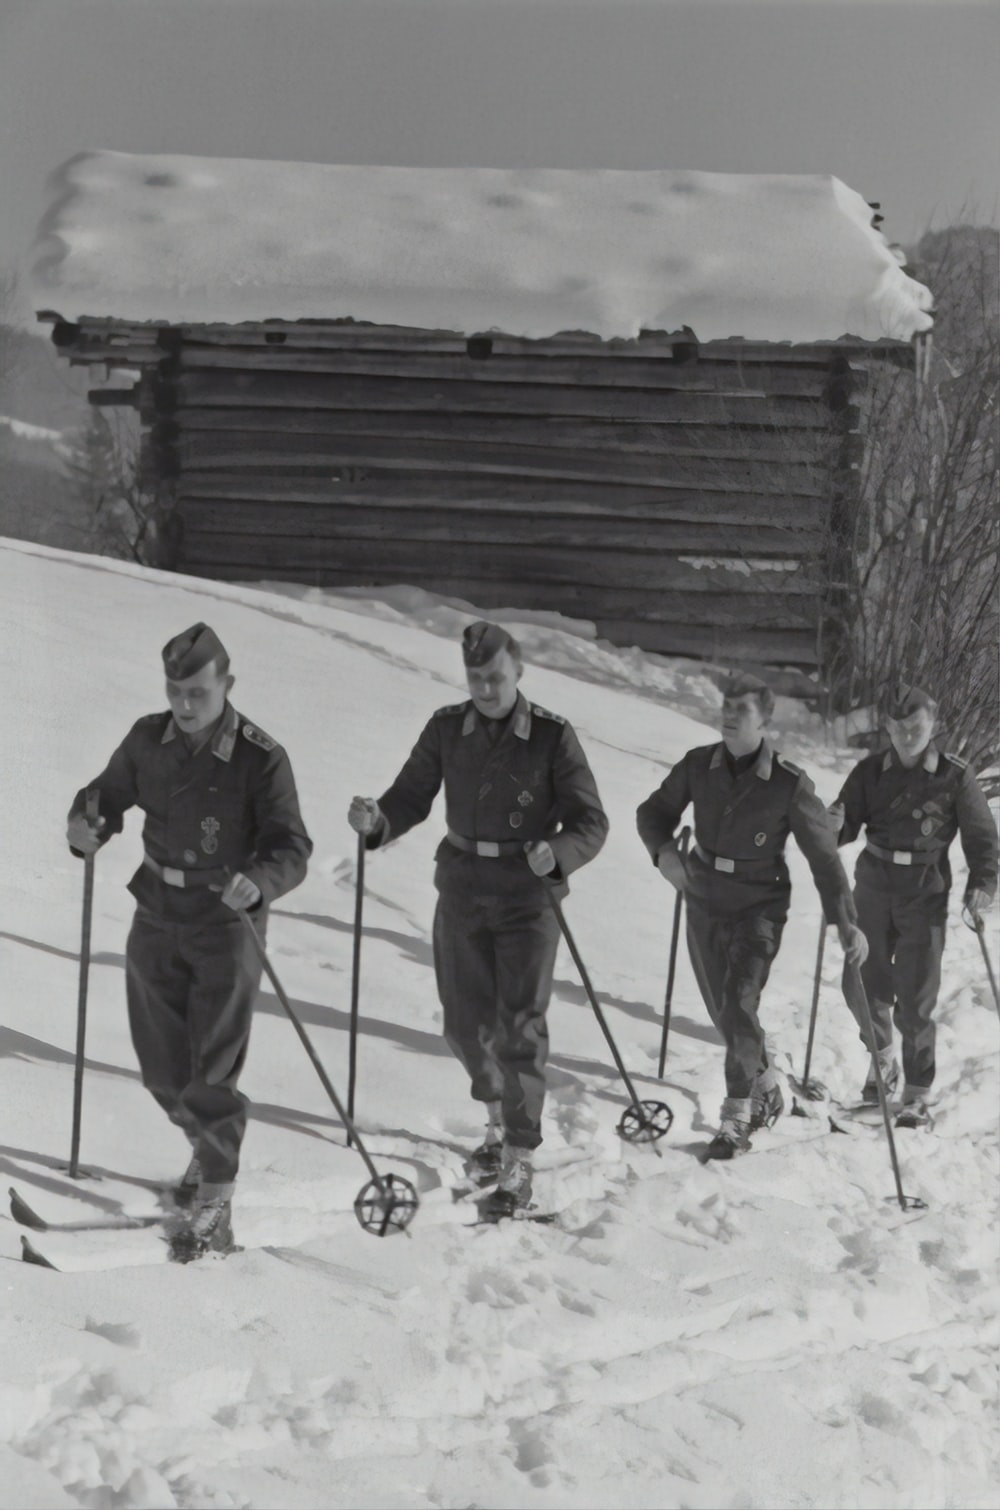 grayscale photography of four men walking on snow